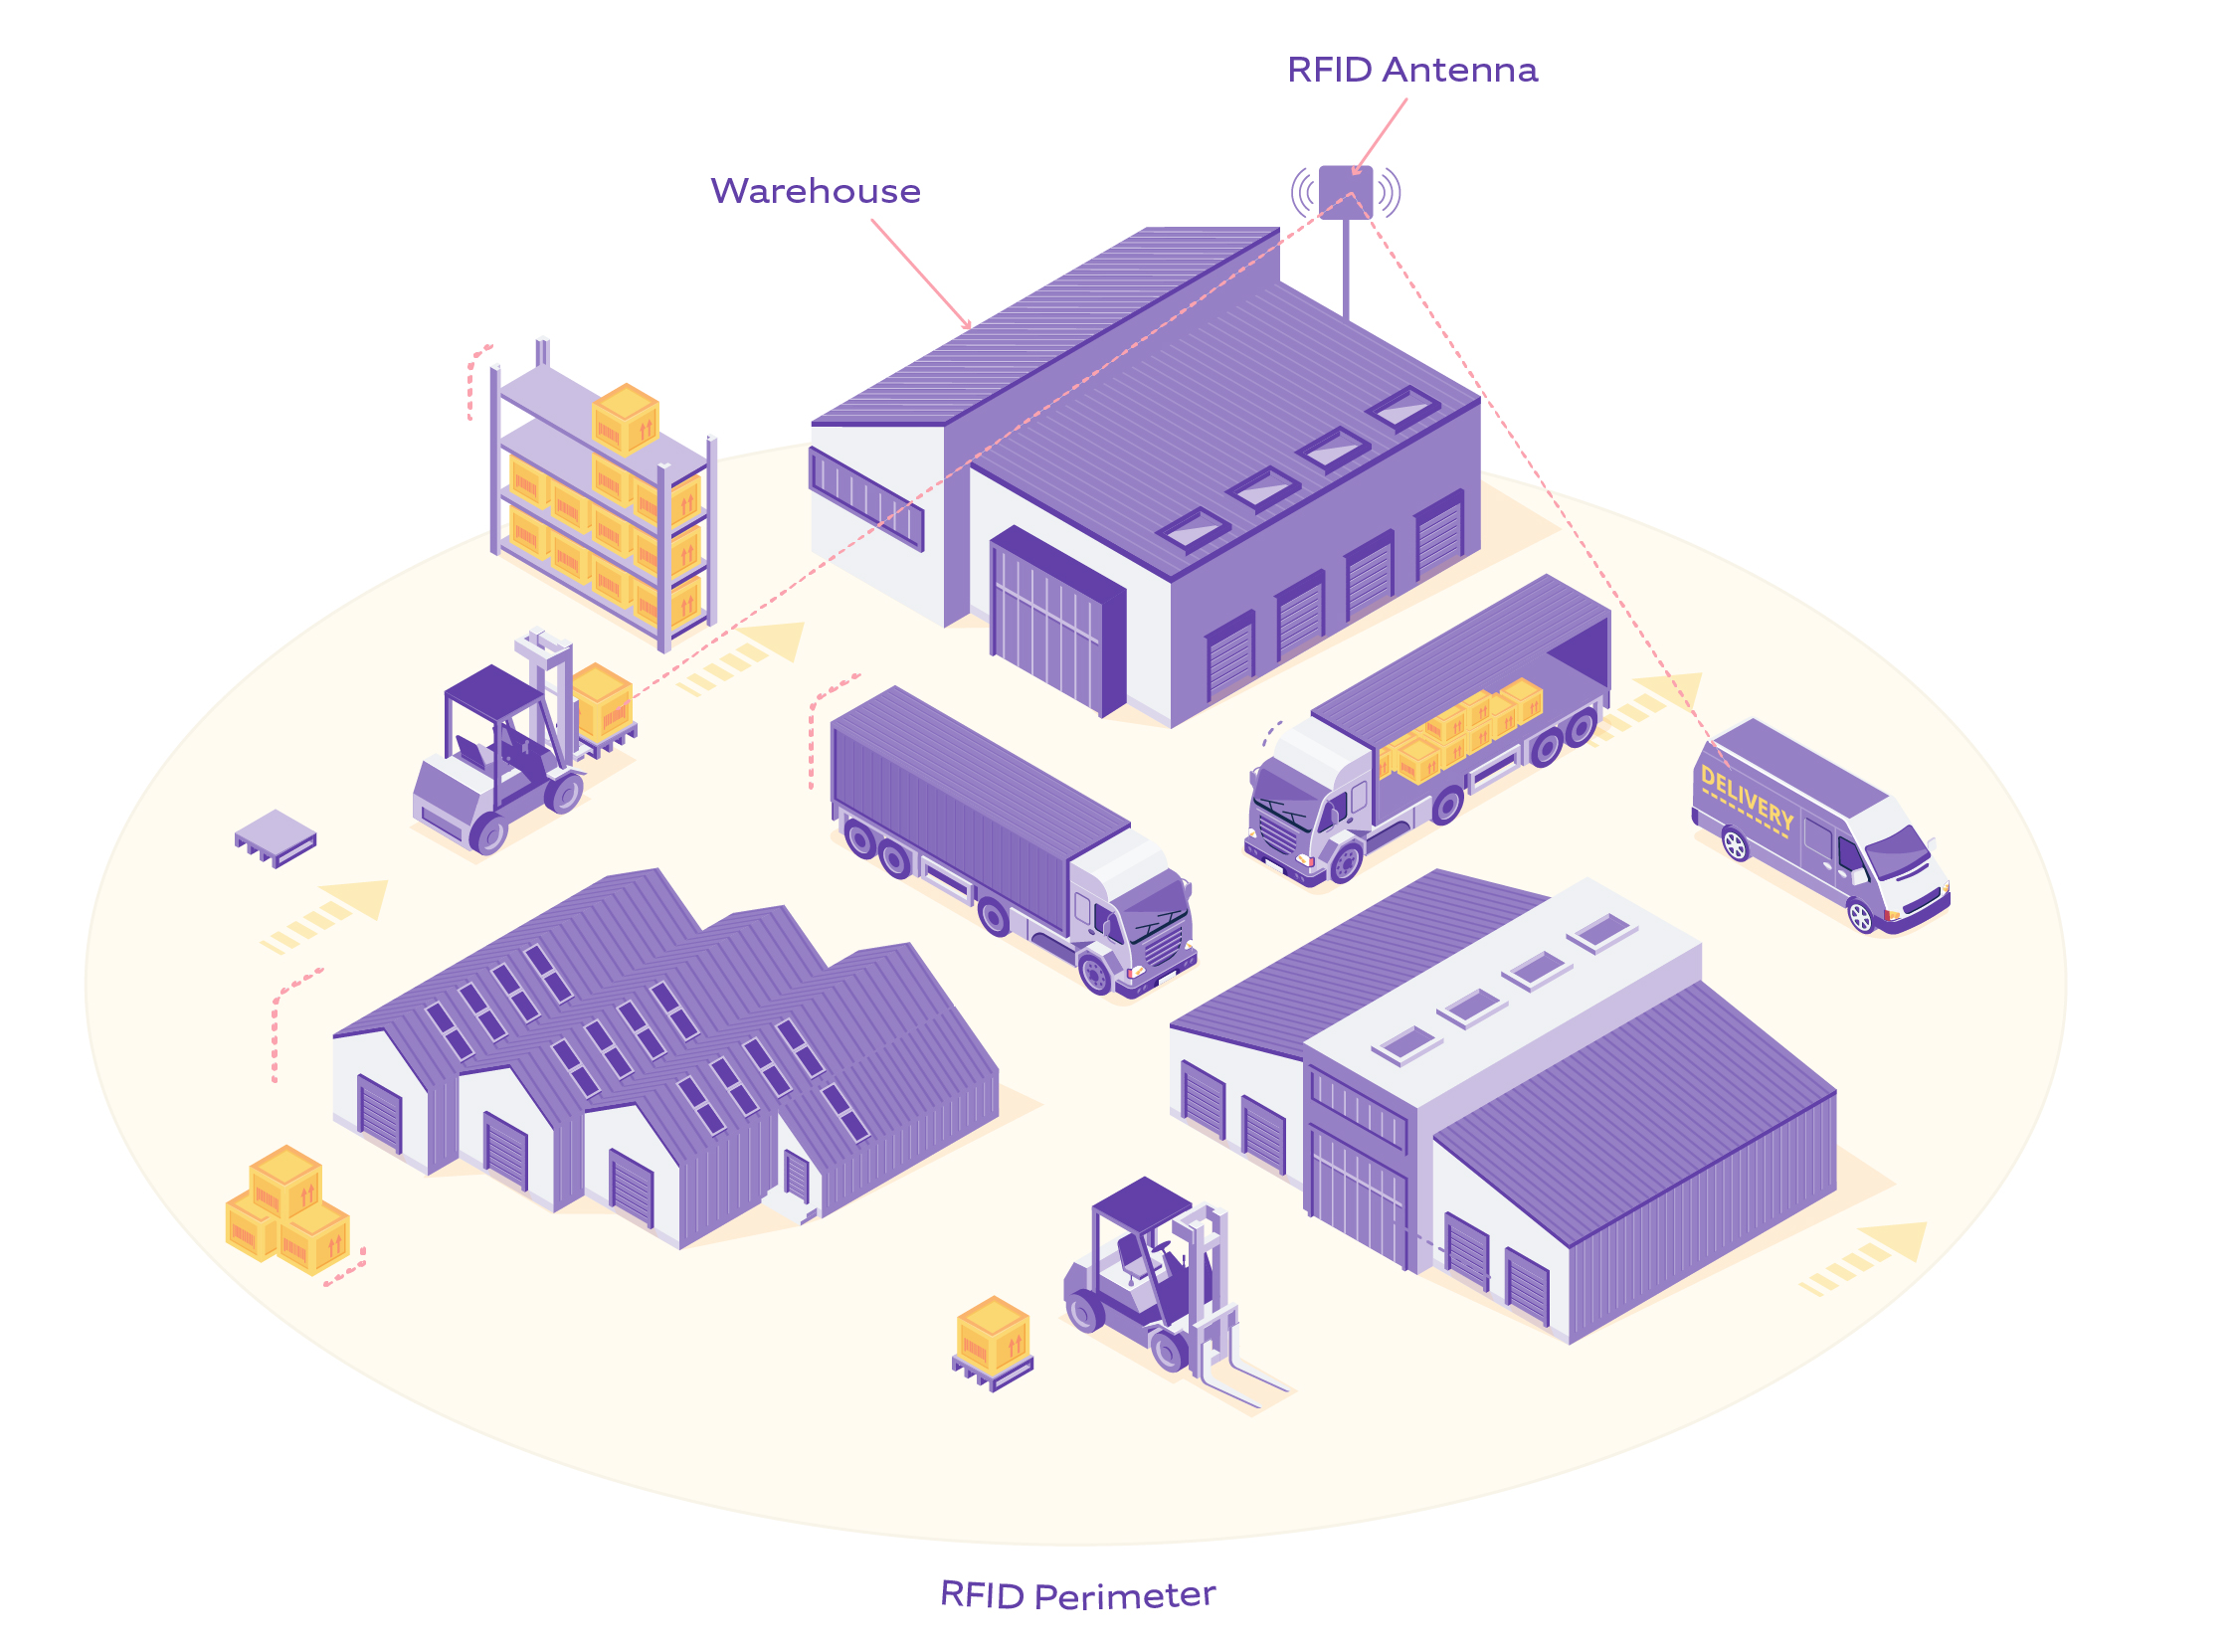 An illustration depicting how geofencing technology works using RFID